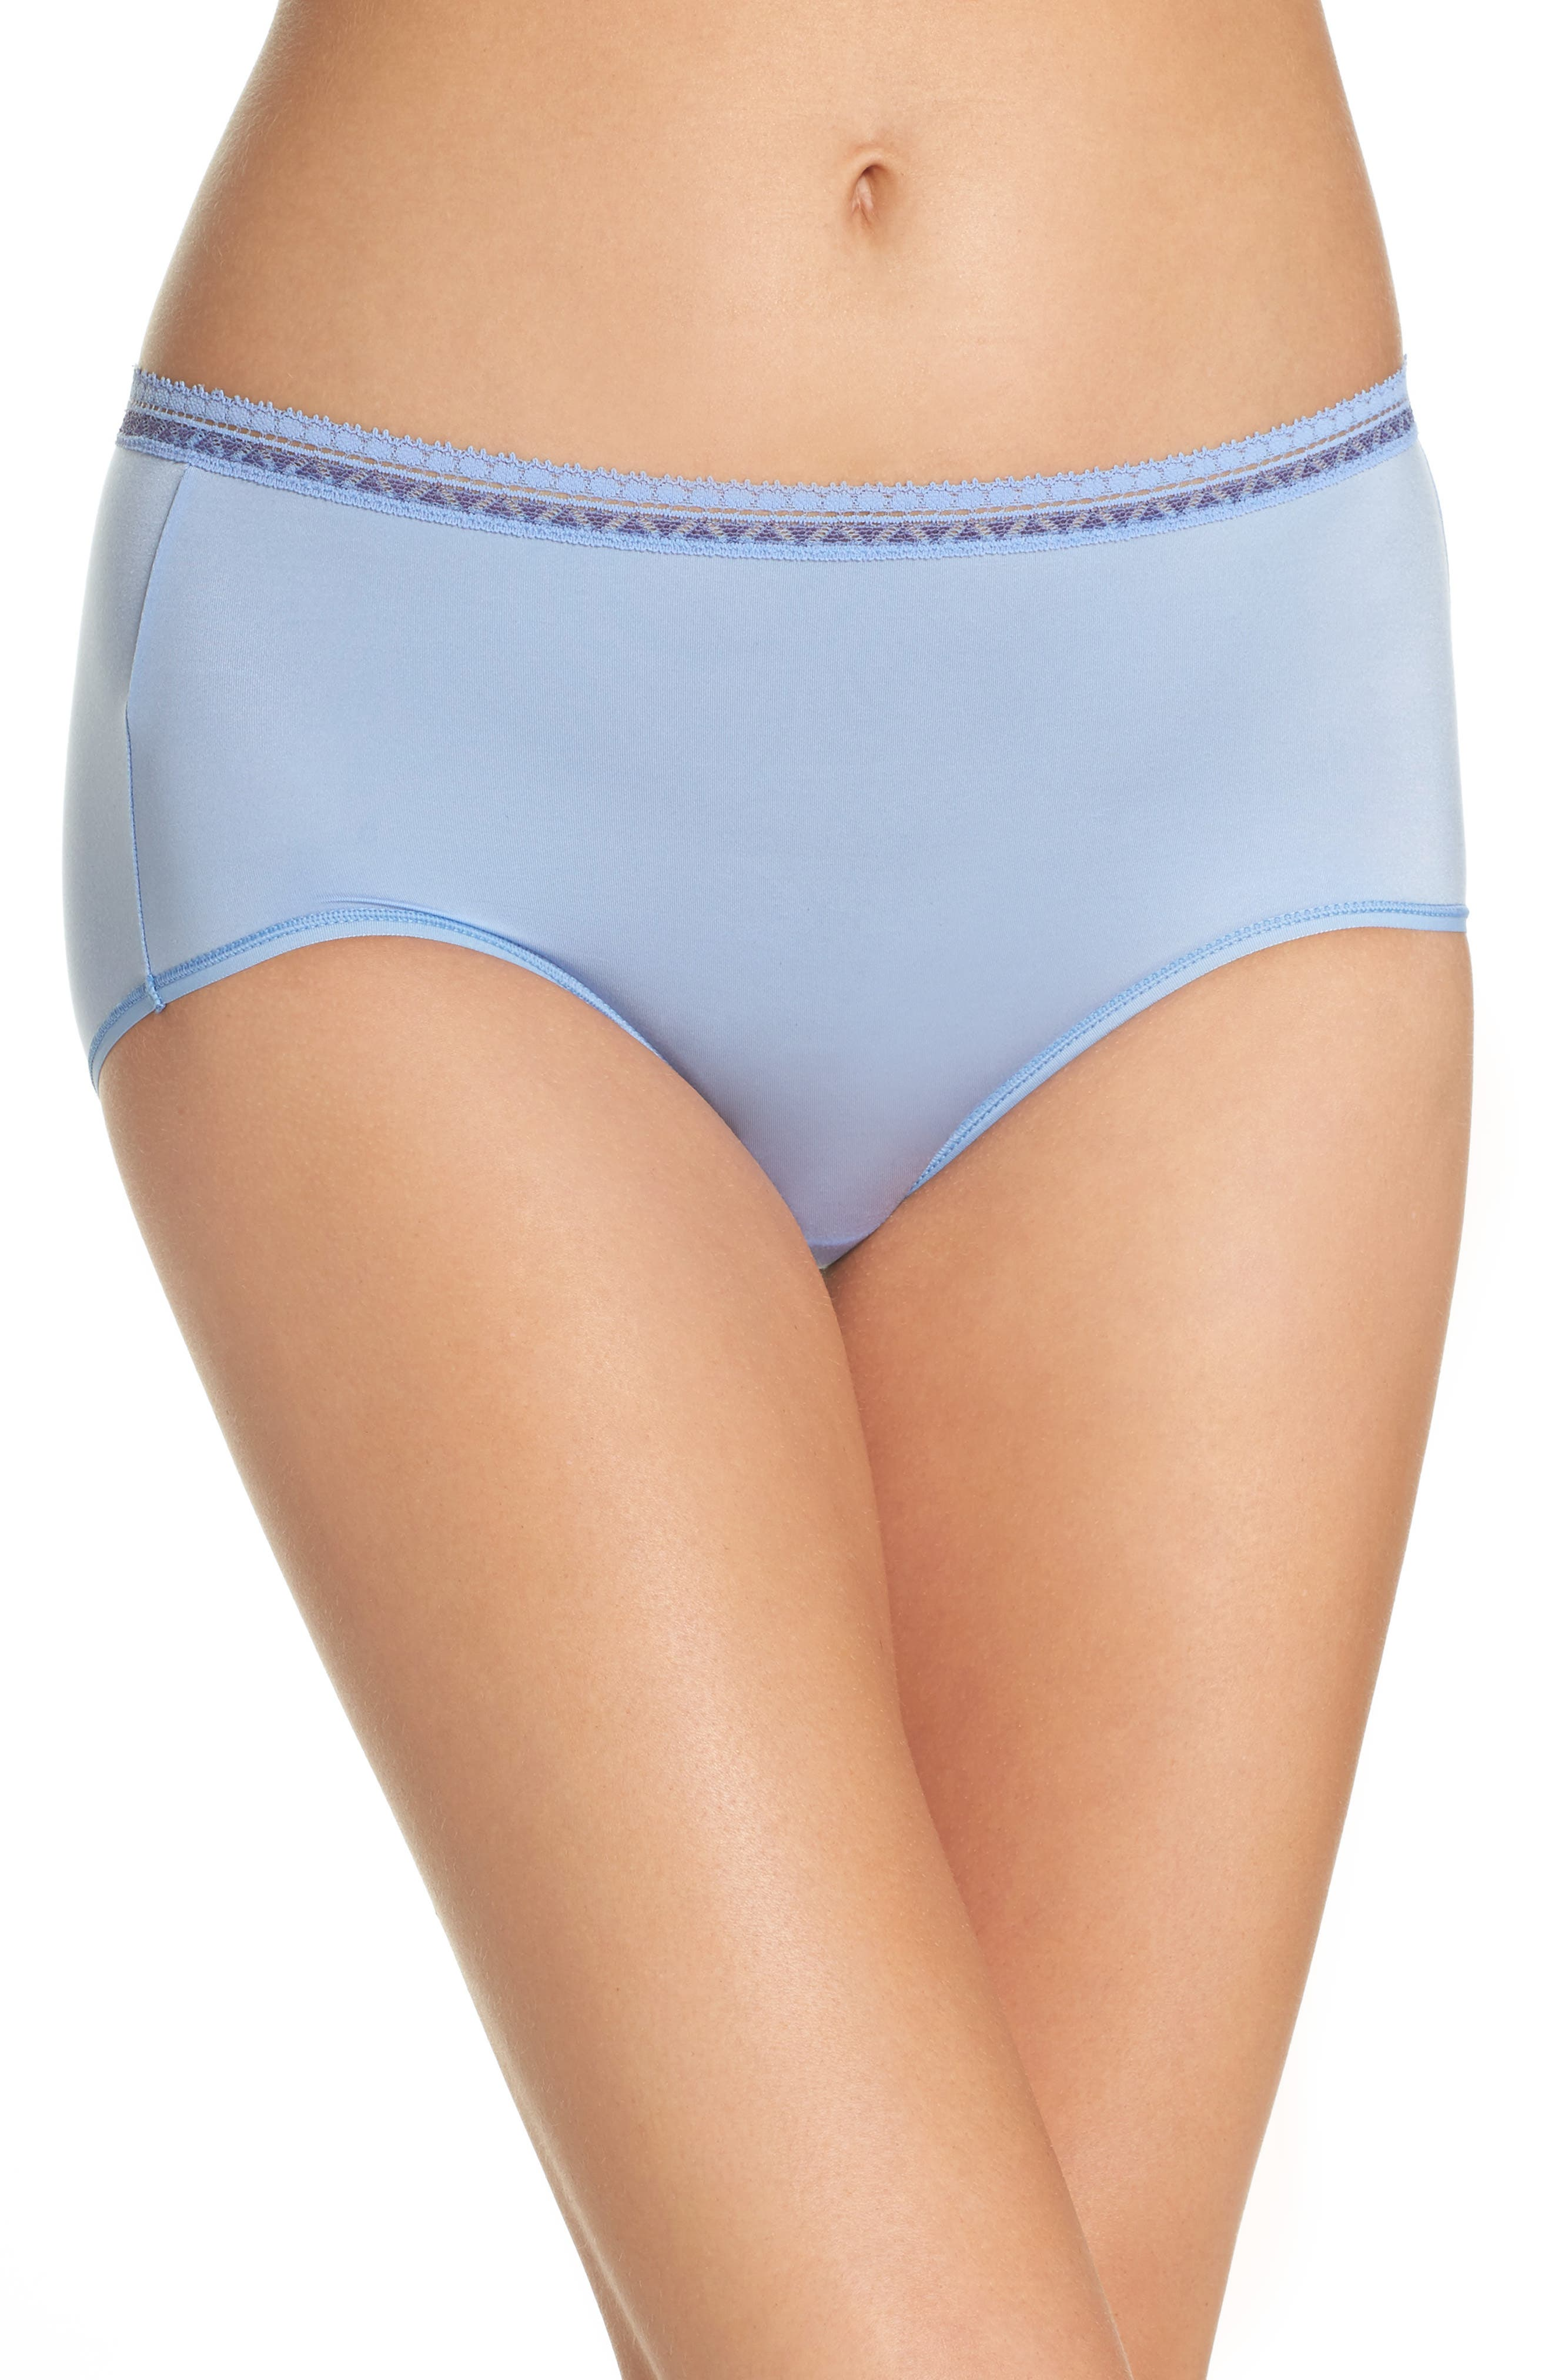 Alternate Image 1 Selected - Wacoal Perfect Primer Briefs (3 for $39)